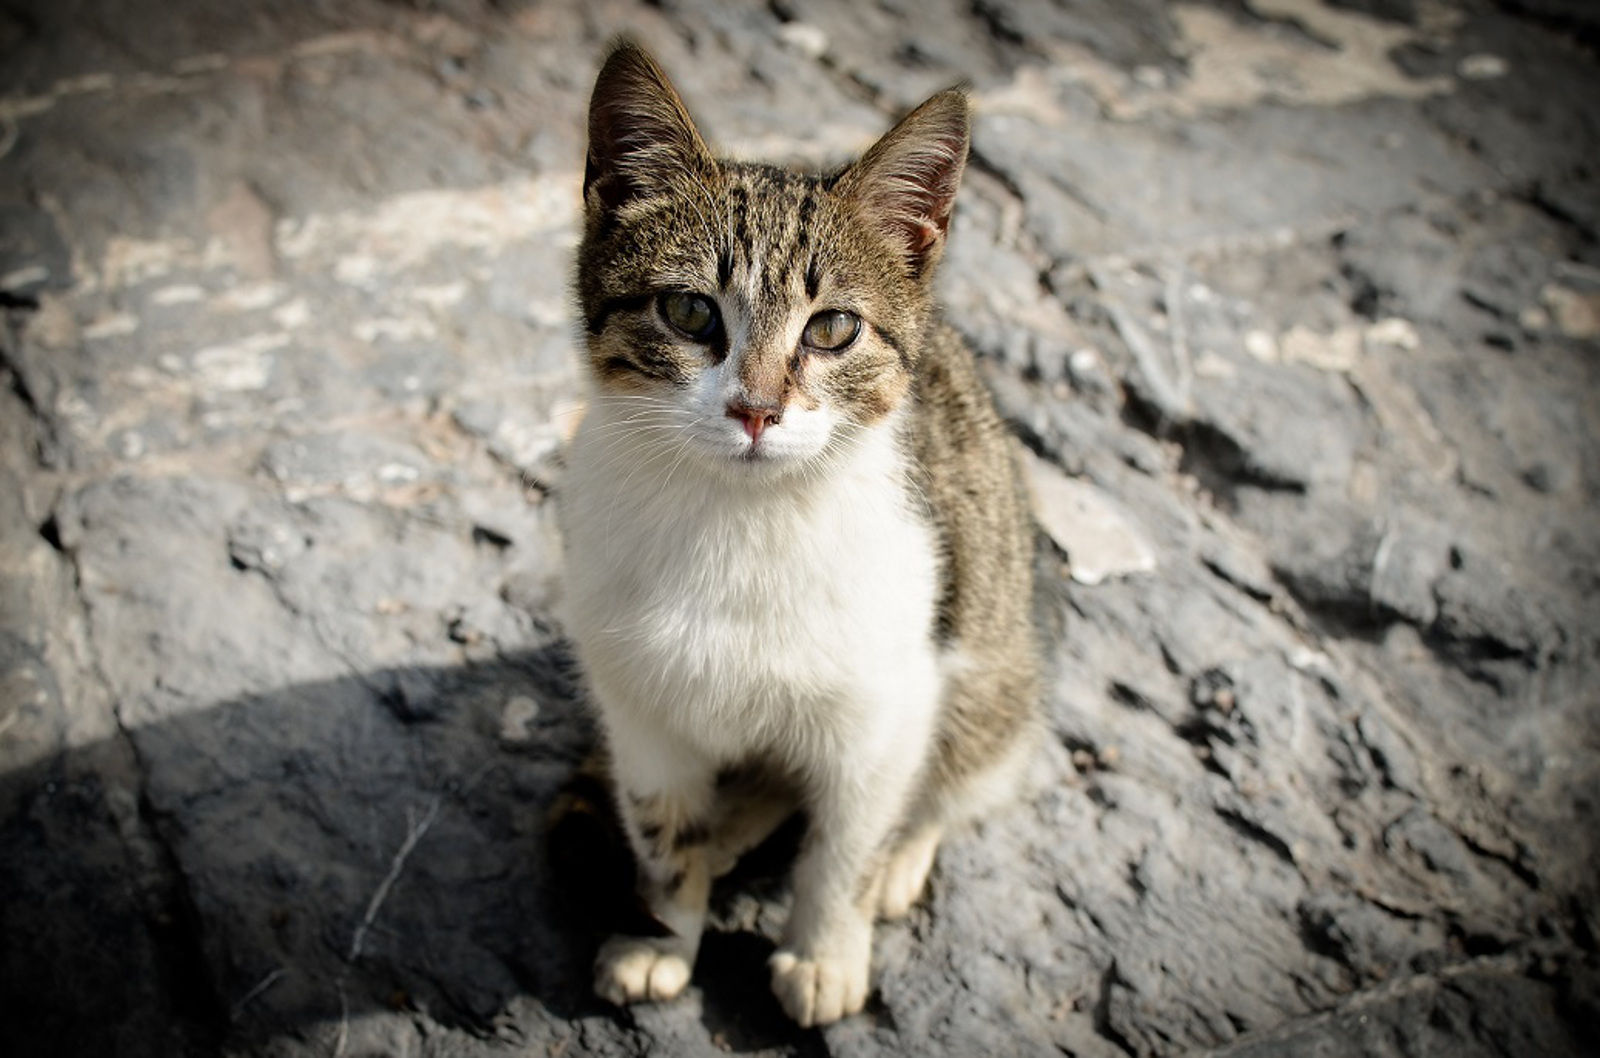 Get Involved to Improve the Lives of Feral Cats Through Trap-Neuter-Return